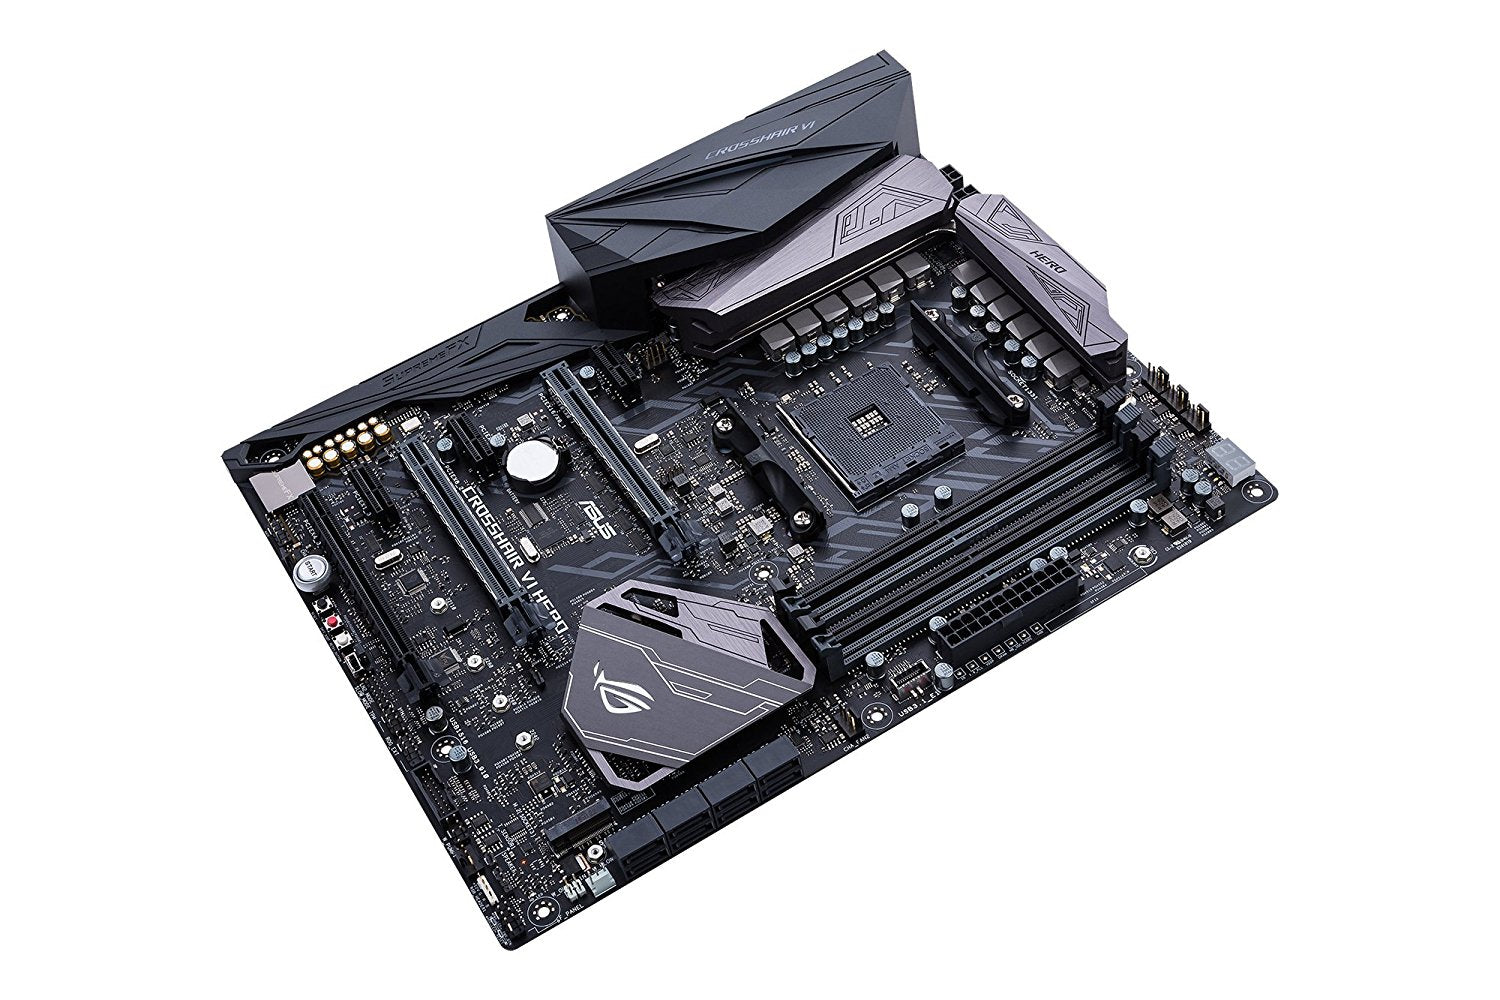 Asus ROG CROSSHAIR VI HERO AMD X370 ATX Gaming motherboard with Aura Sync RGB LEDs, DDR4 3200MHz, M.2, USB 3.1 front-panel connector and type-A/C